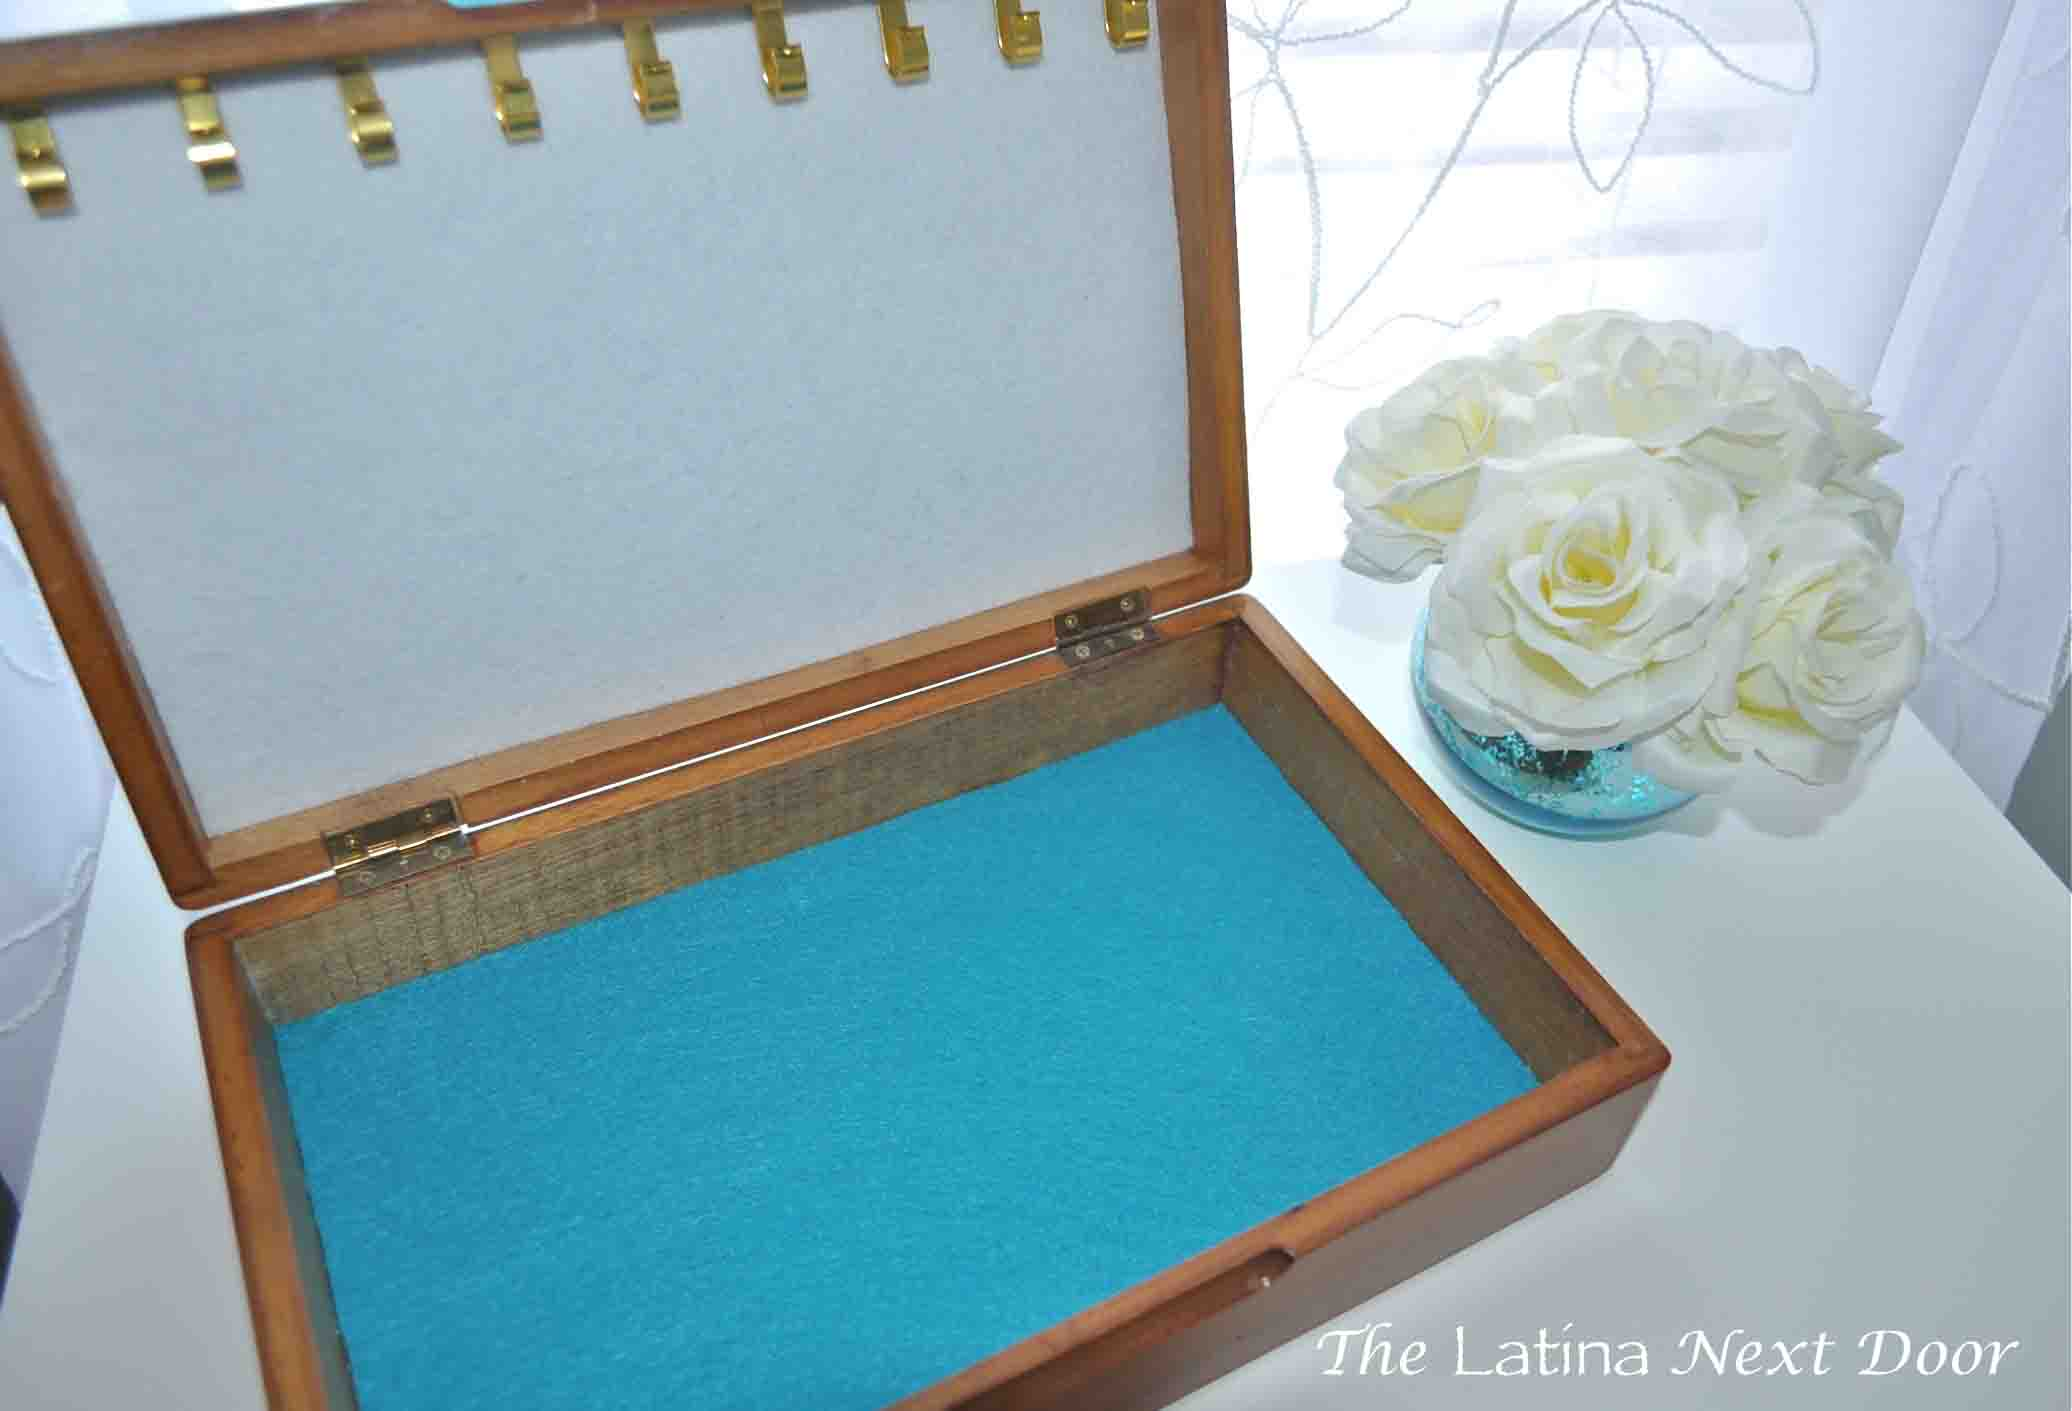 DIY Jewelry Box Makeover 11 Goodwill Jewelry Box Makeover for Under $6